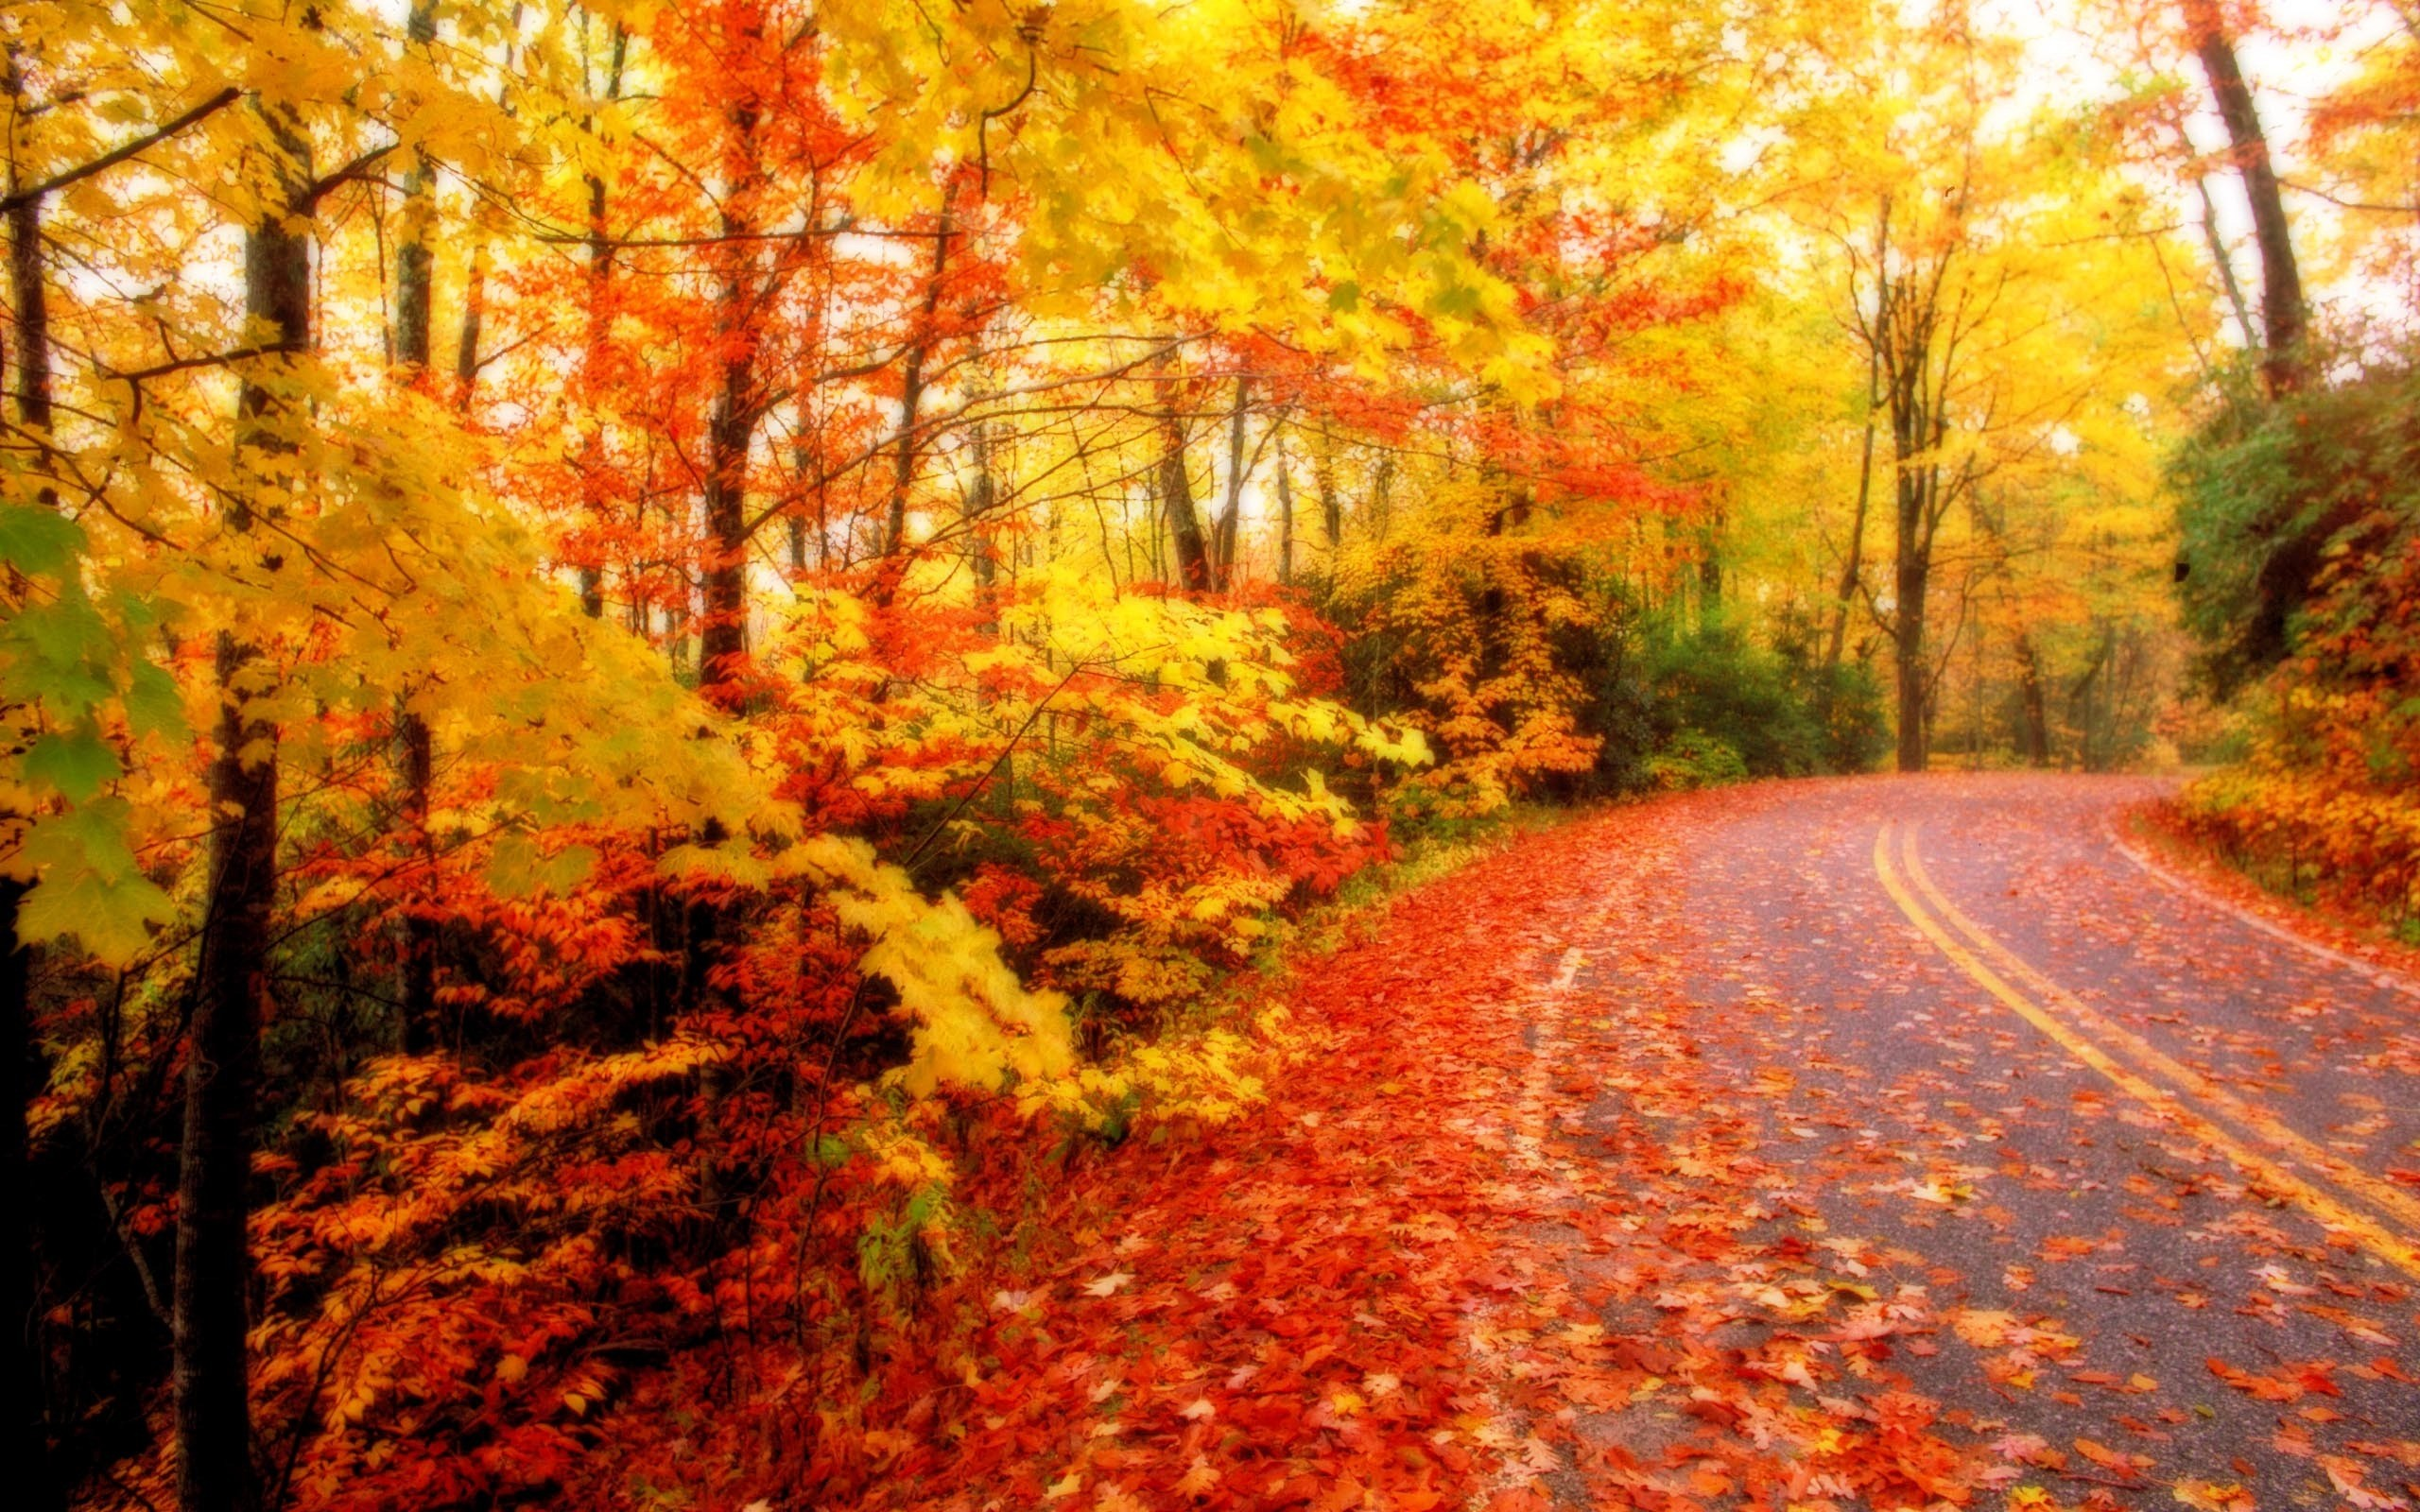 on July 9, 2015 By admin Comments Off on Fall Foliage Wallpaper .